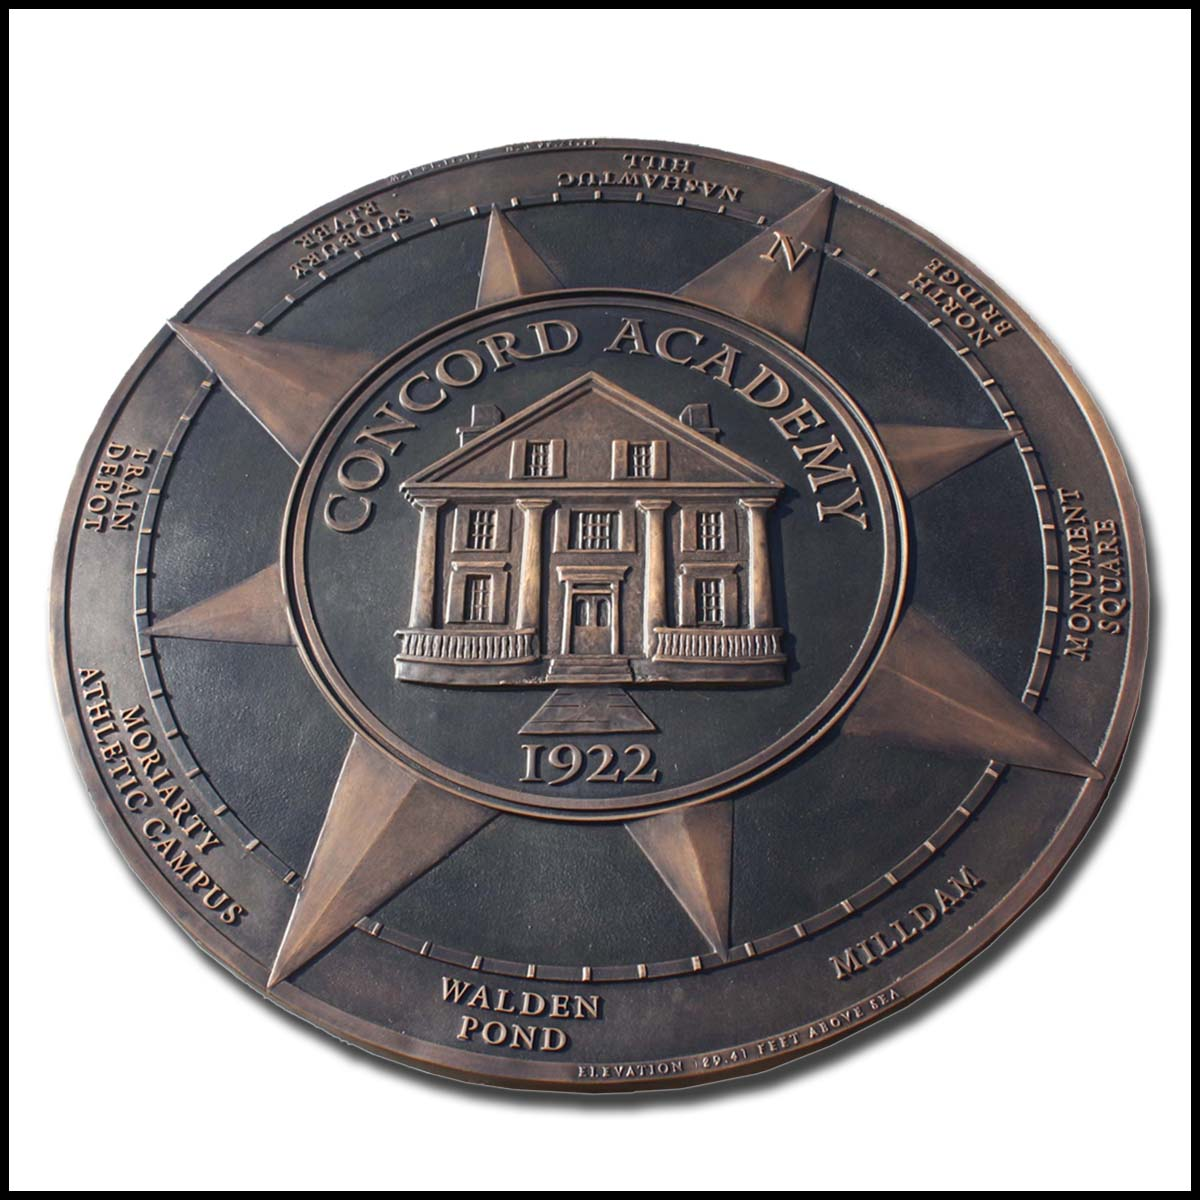 photo of bronze floor medallion with relief sculpture of building and compass elements